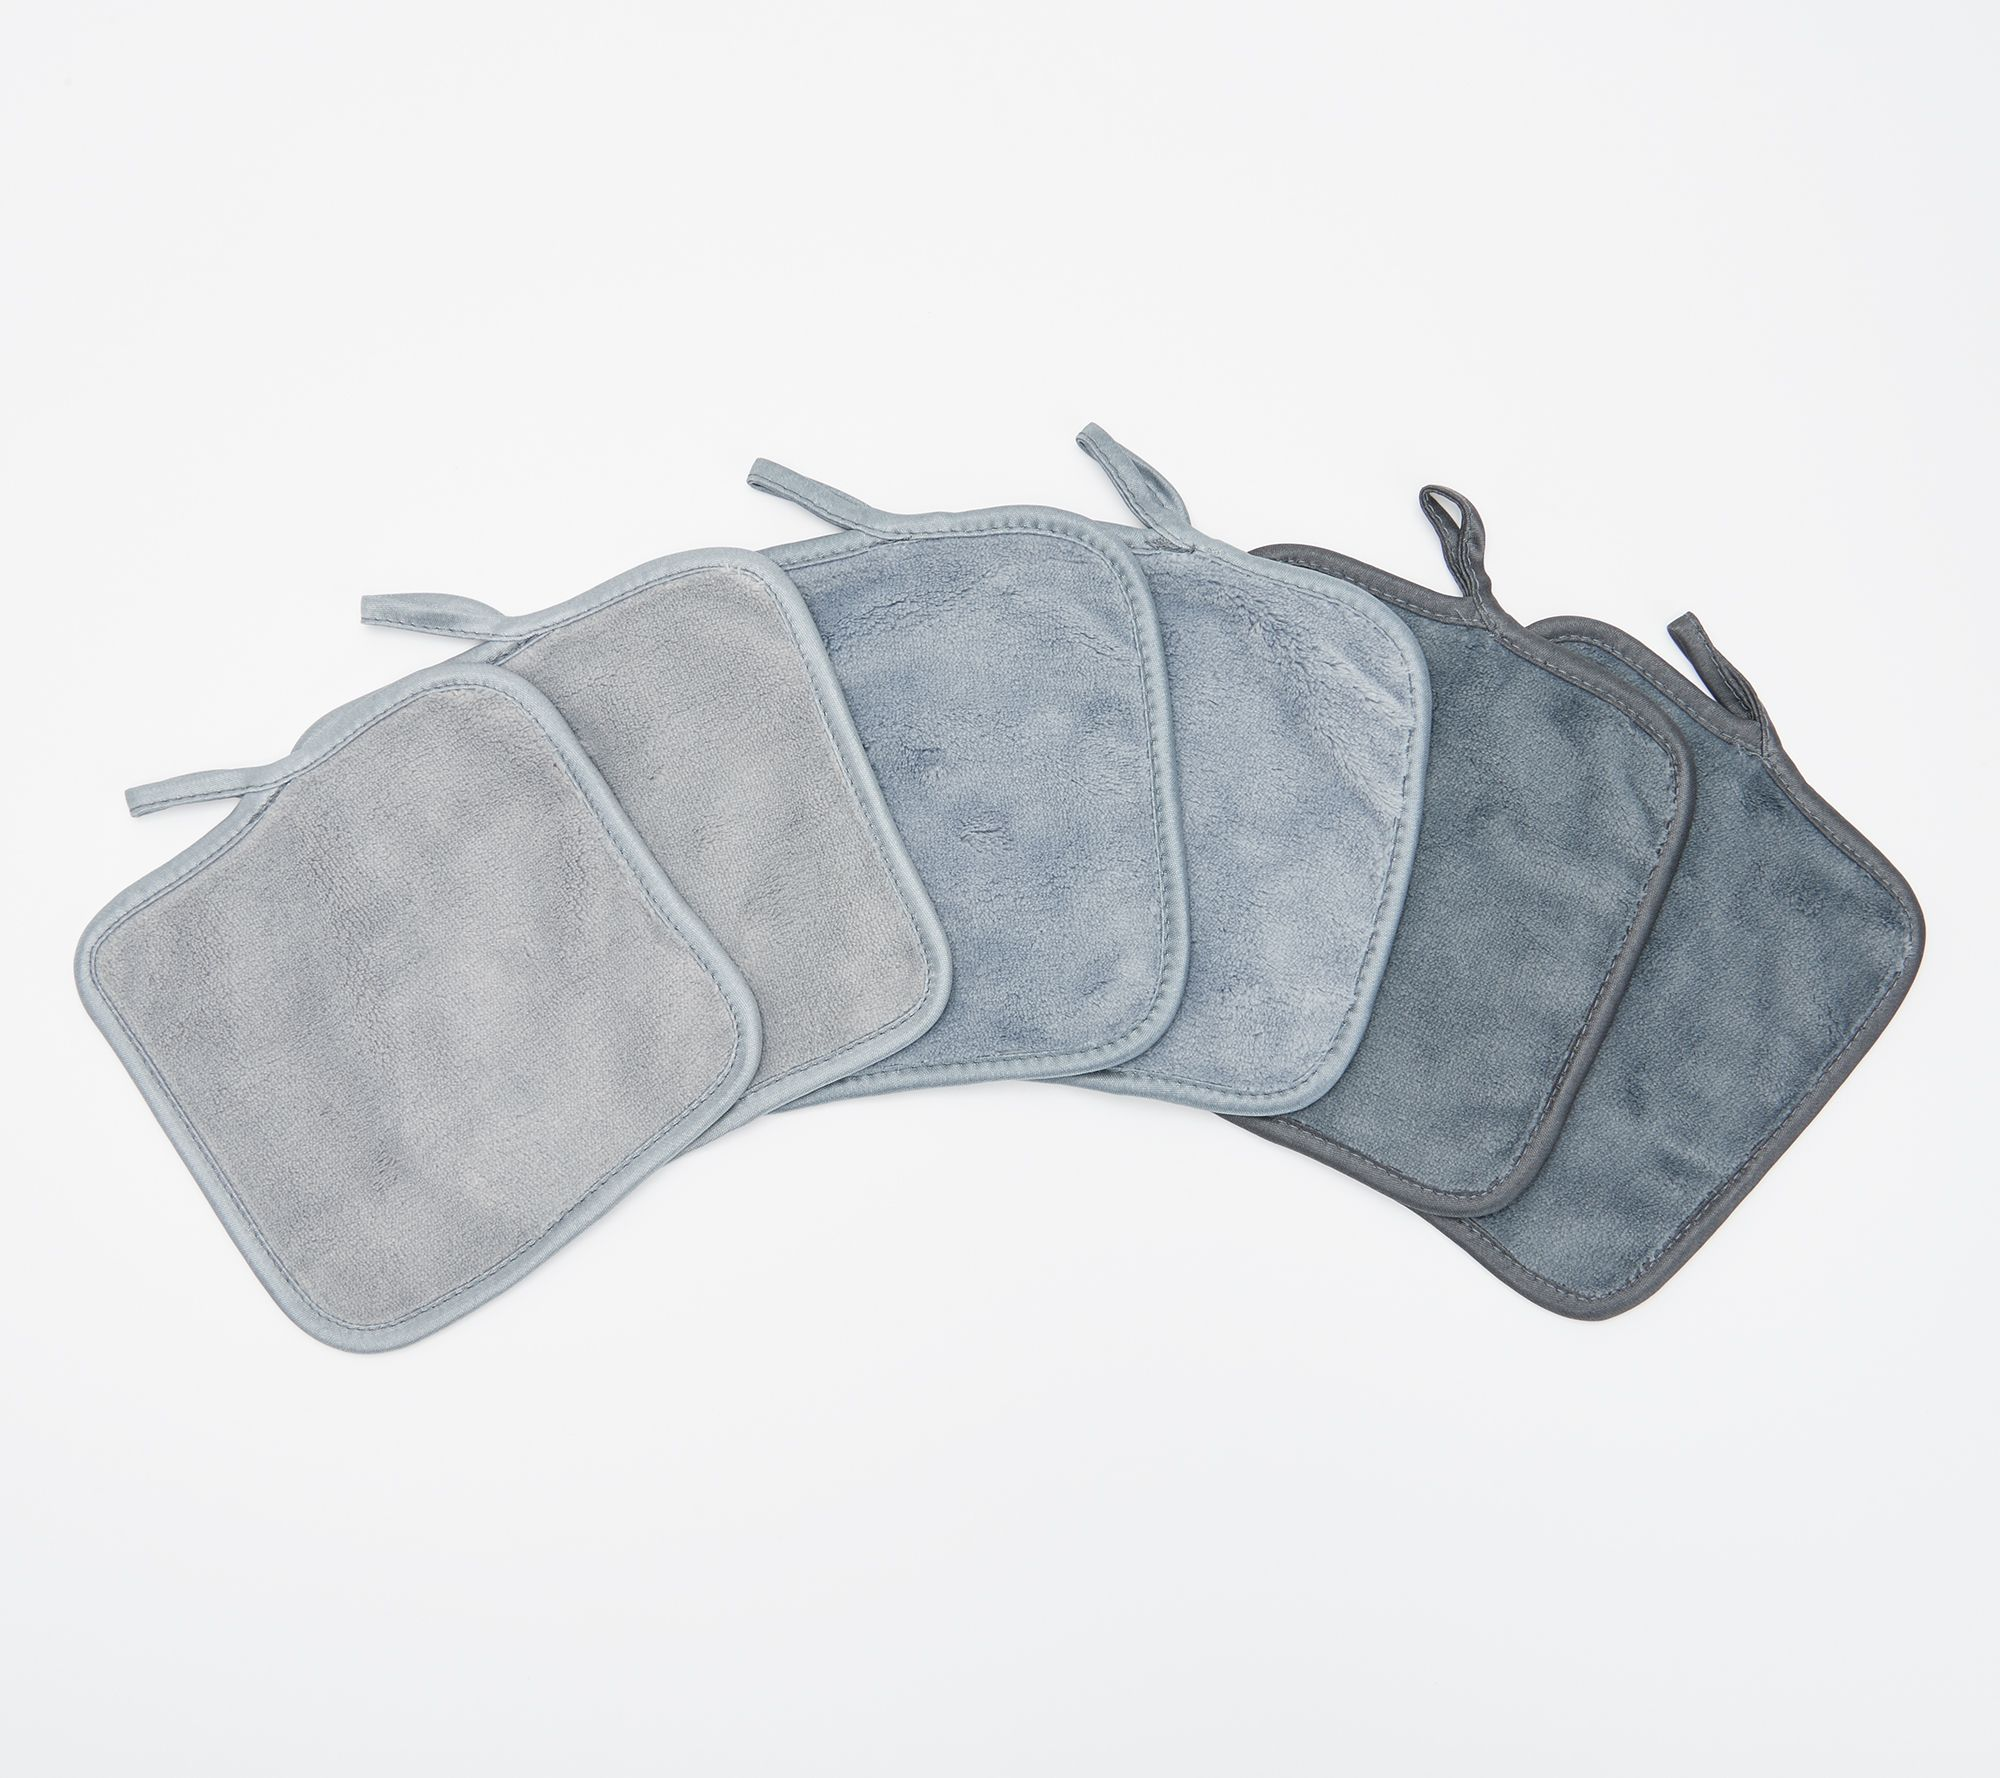 6 face towels for under $20